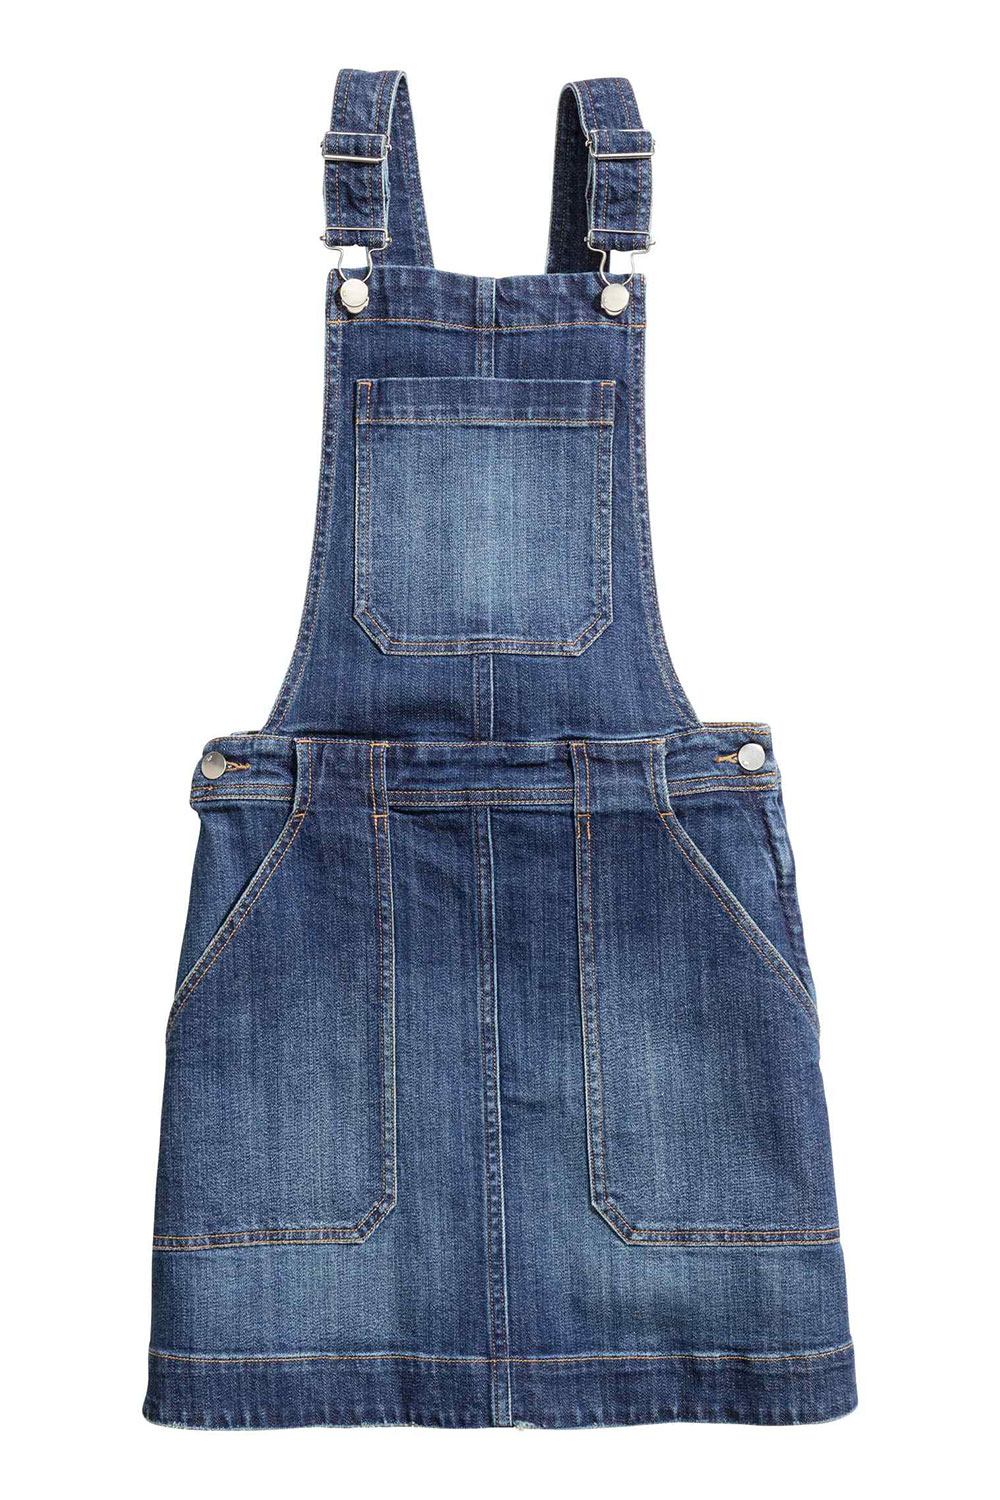 Dungaree Dresses Shop The High Steet S Hottest Look